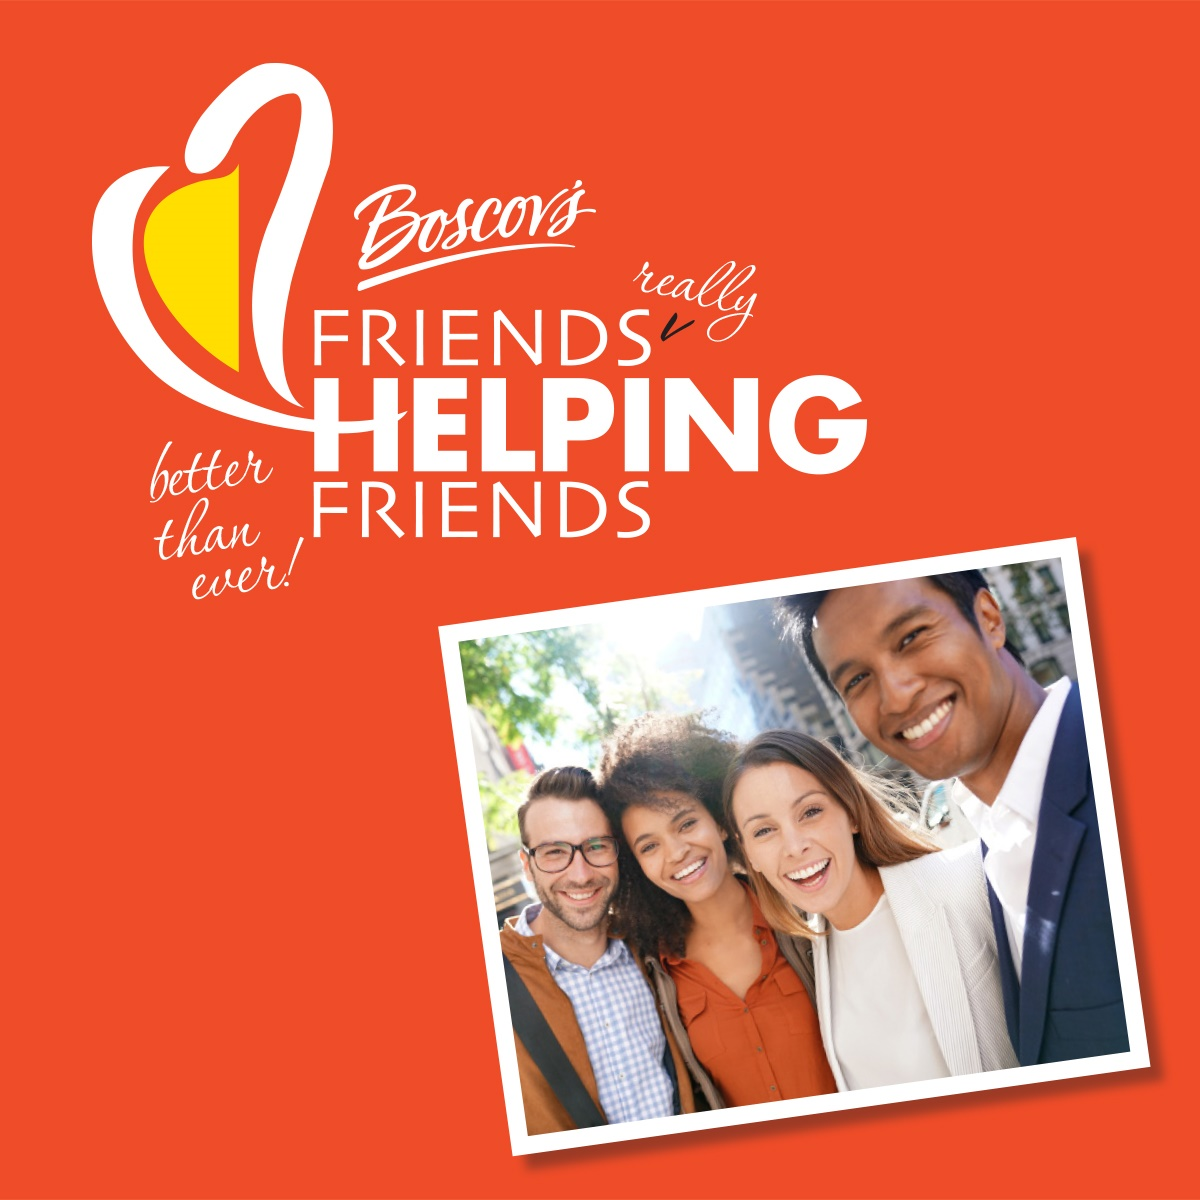 Friends Helping Friends October 14-15